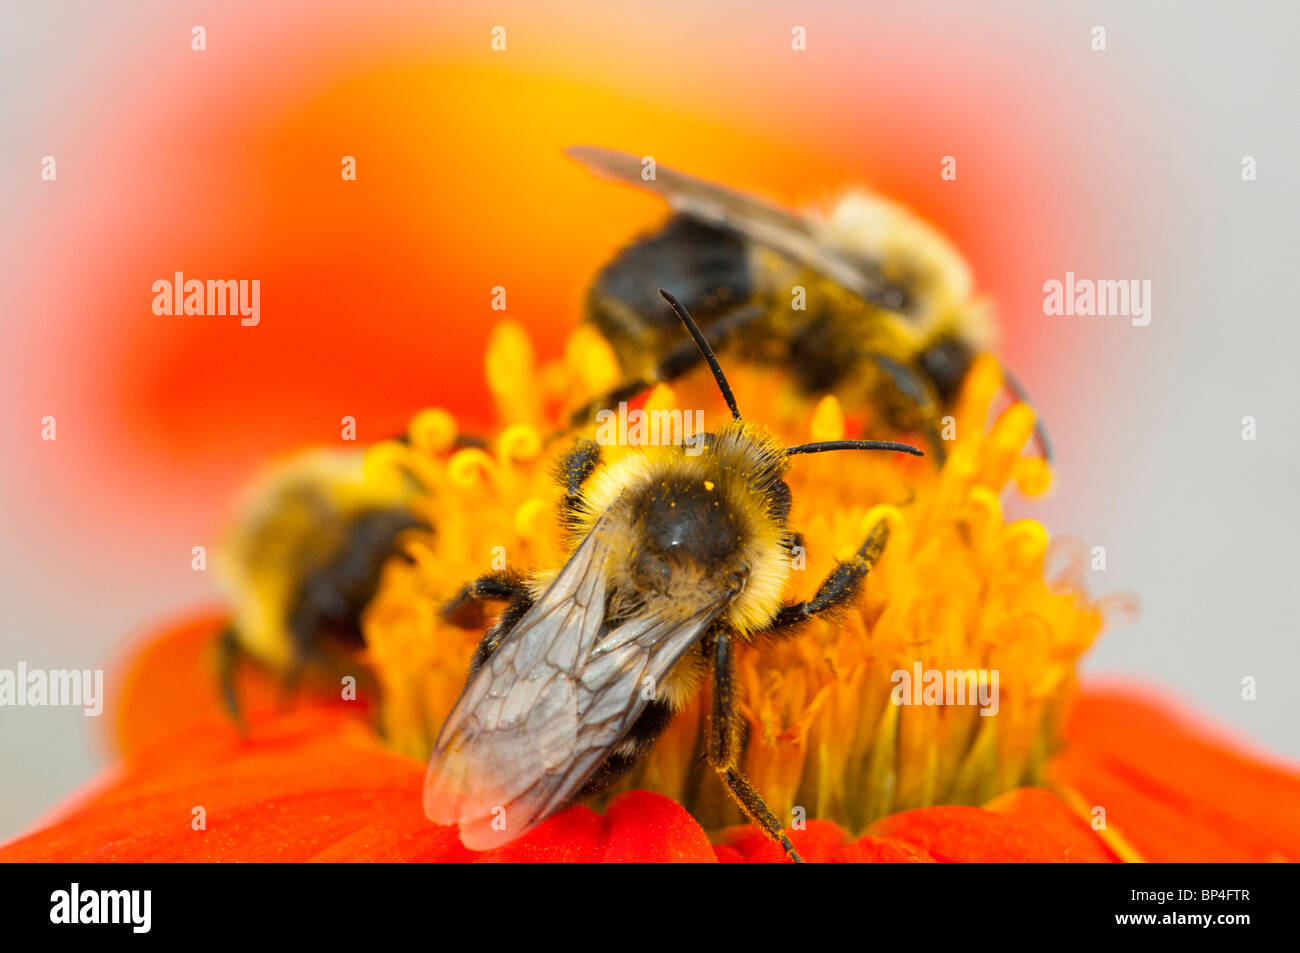 Three Bees on Mexican Sunflower - Stock Image